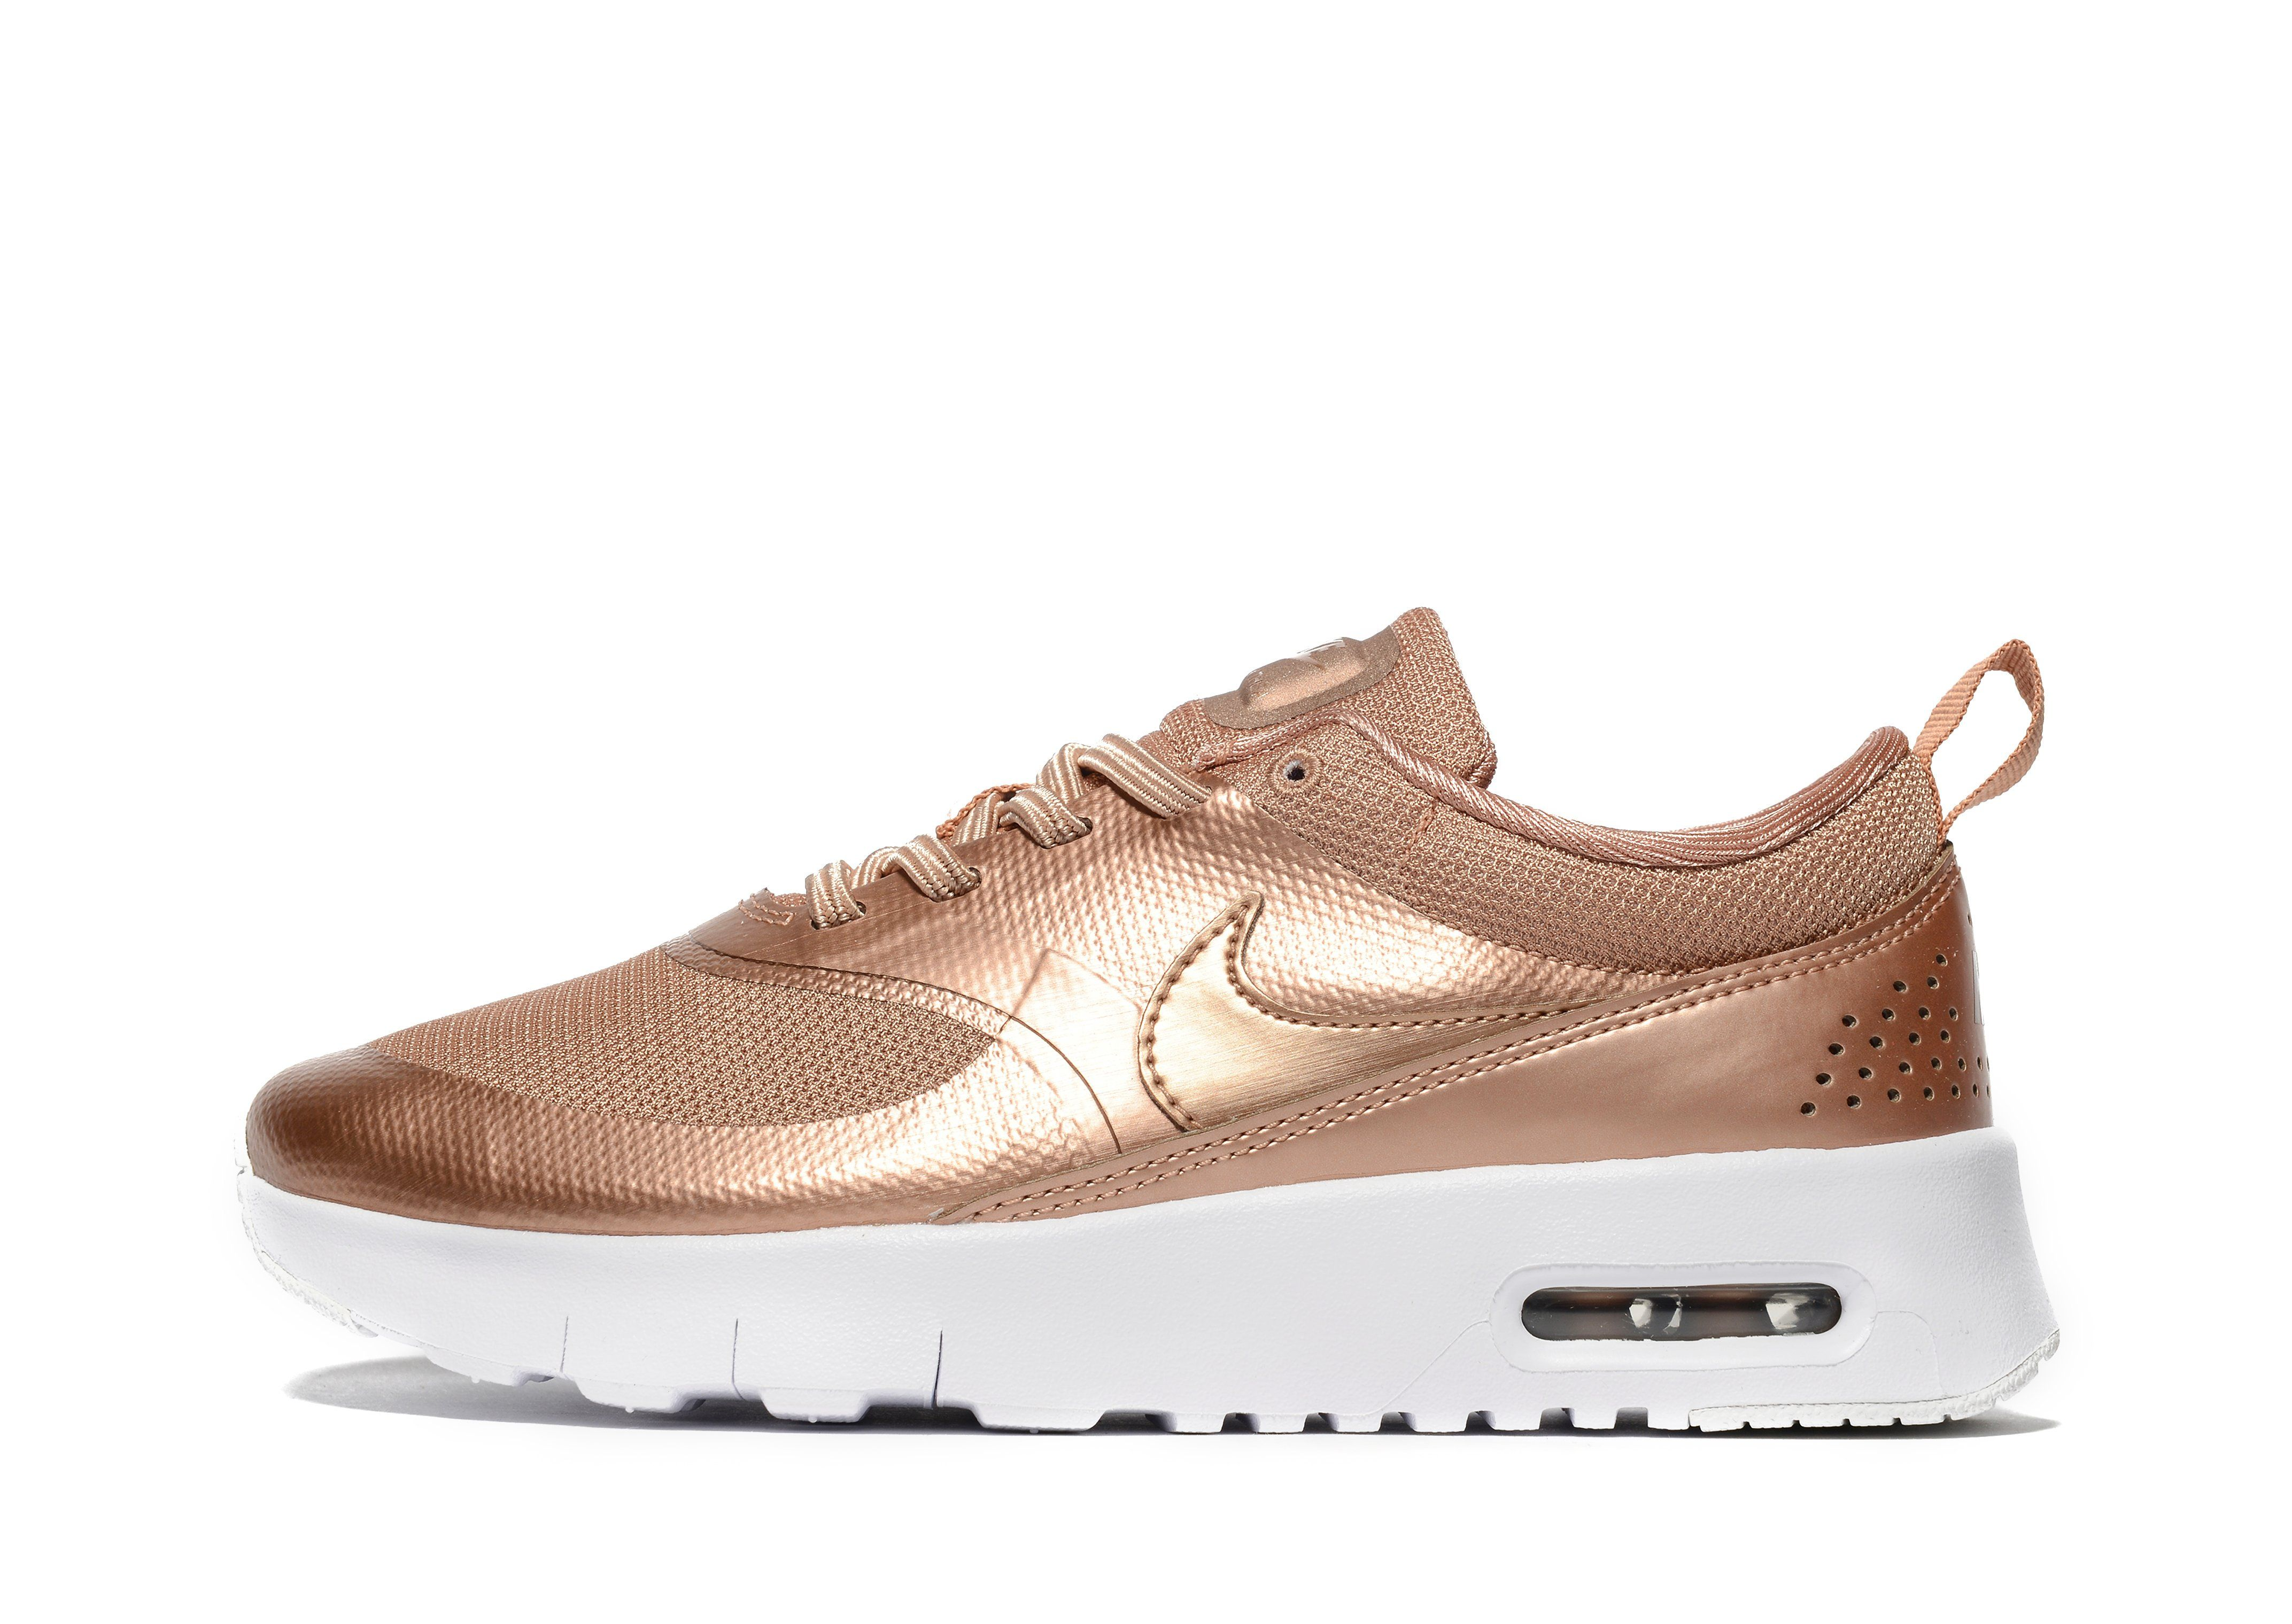 shoes, nike air max 1, pink, gold, brown shoes, prm, nike